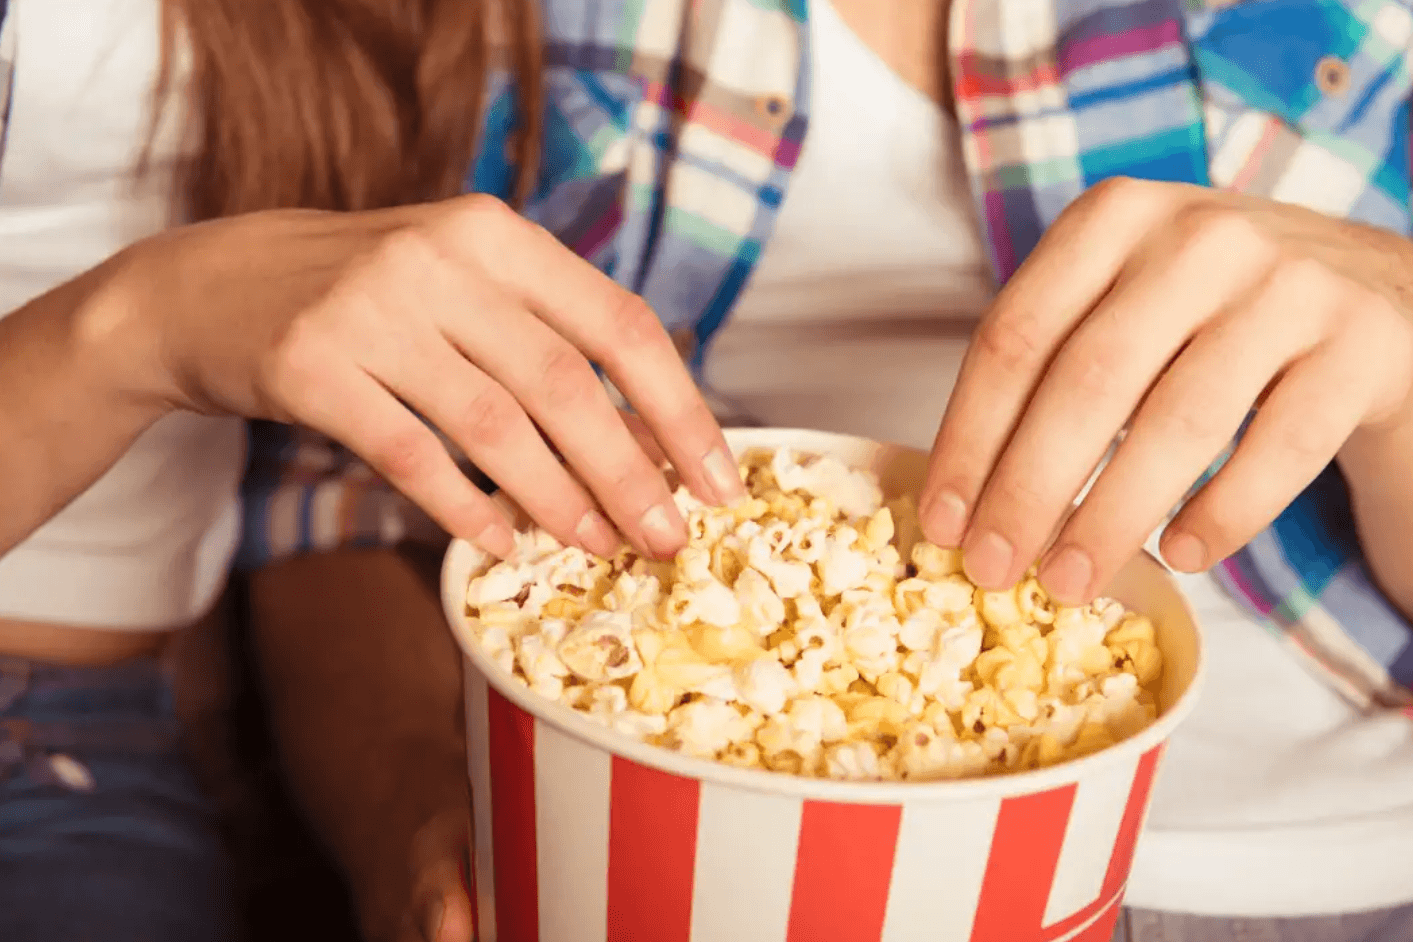 Binge-Worthy Jersey: Spend National Popcorn Day Streaming a Jersey Marathon